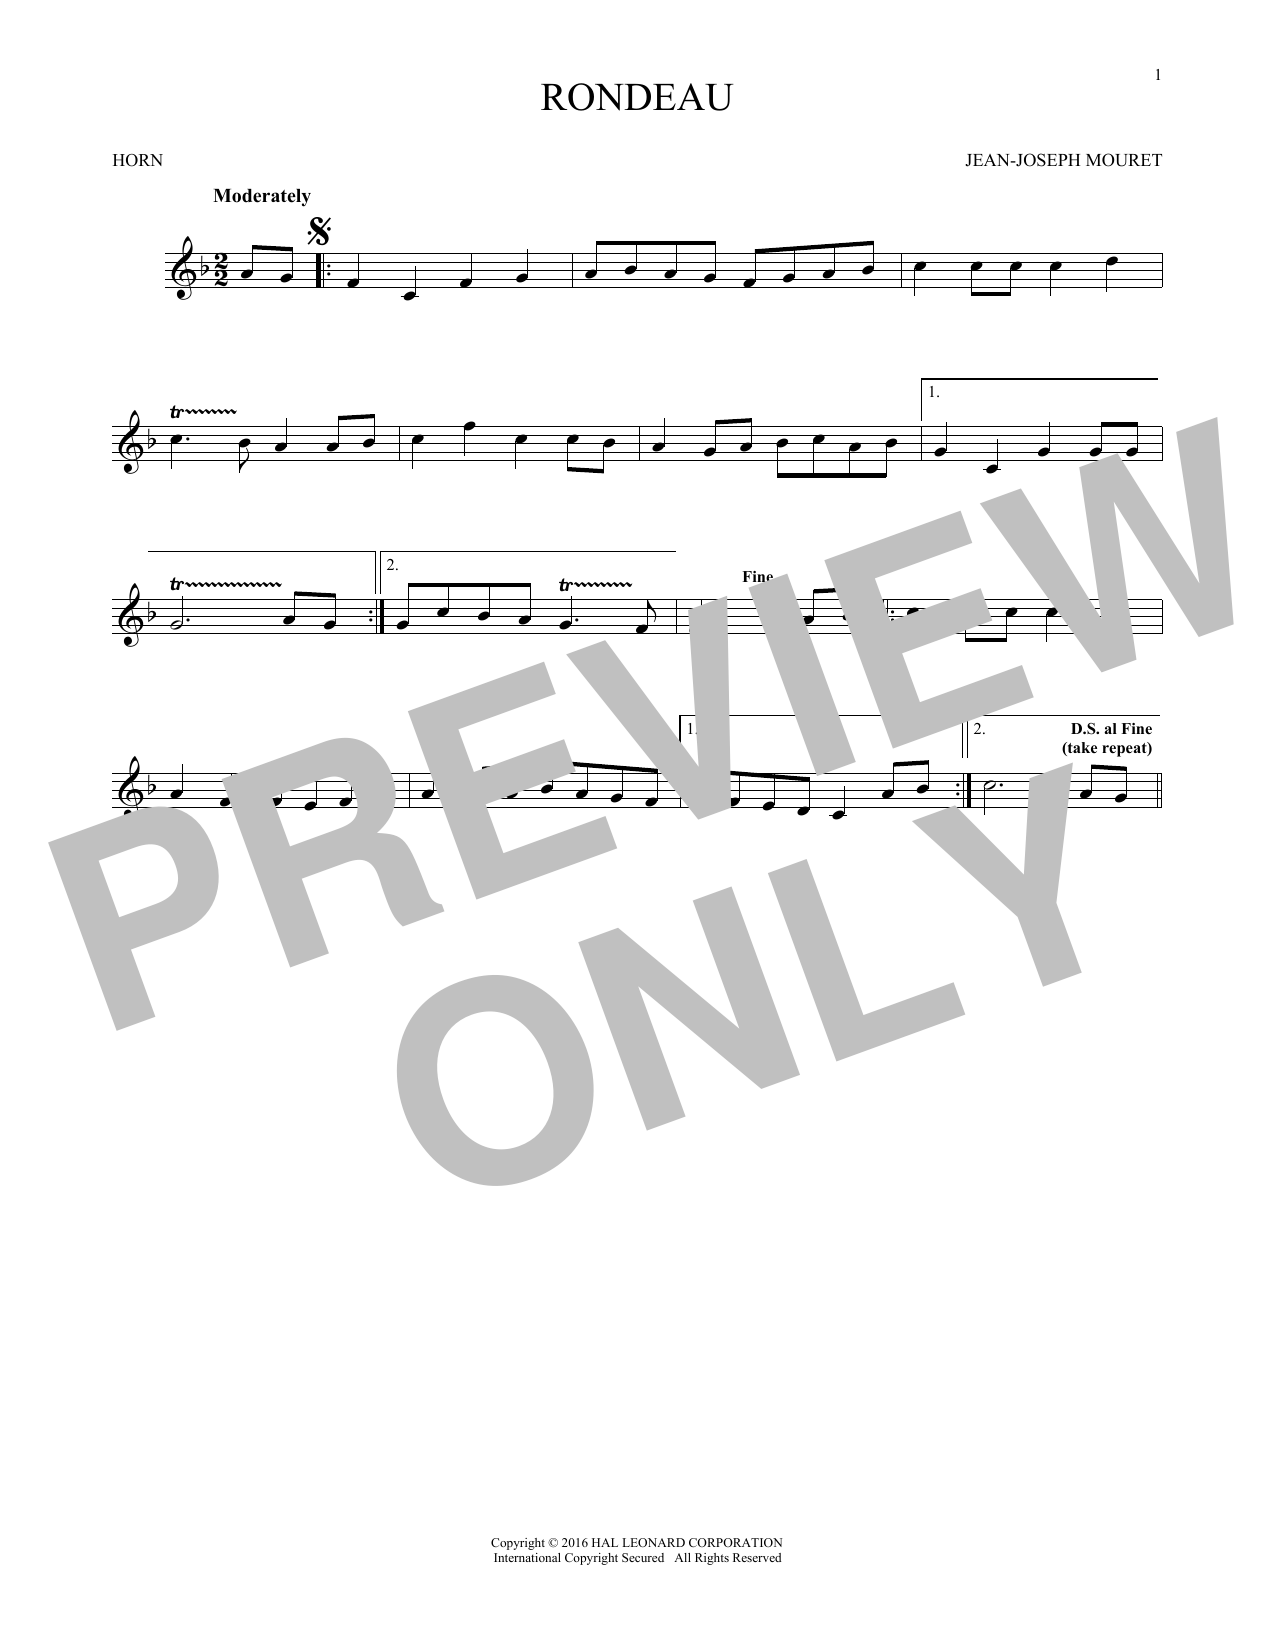 Fanfare Rondeau (French Horn Solo)